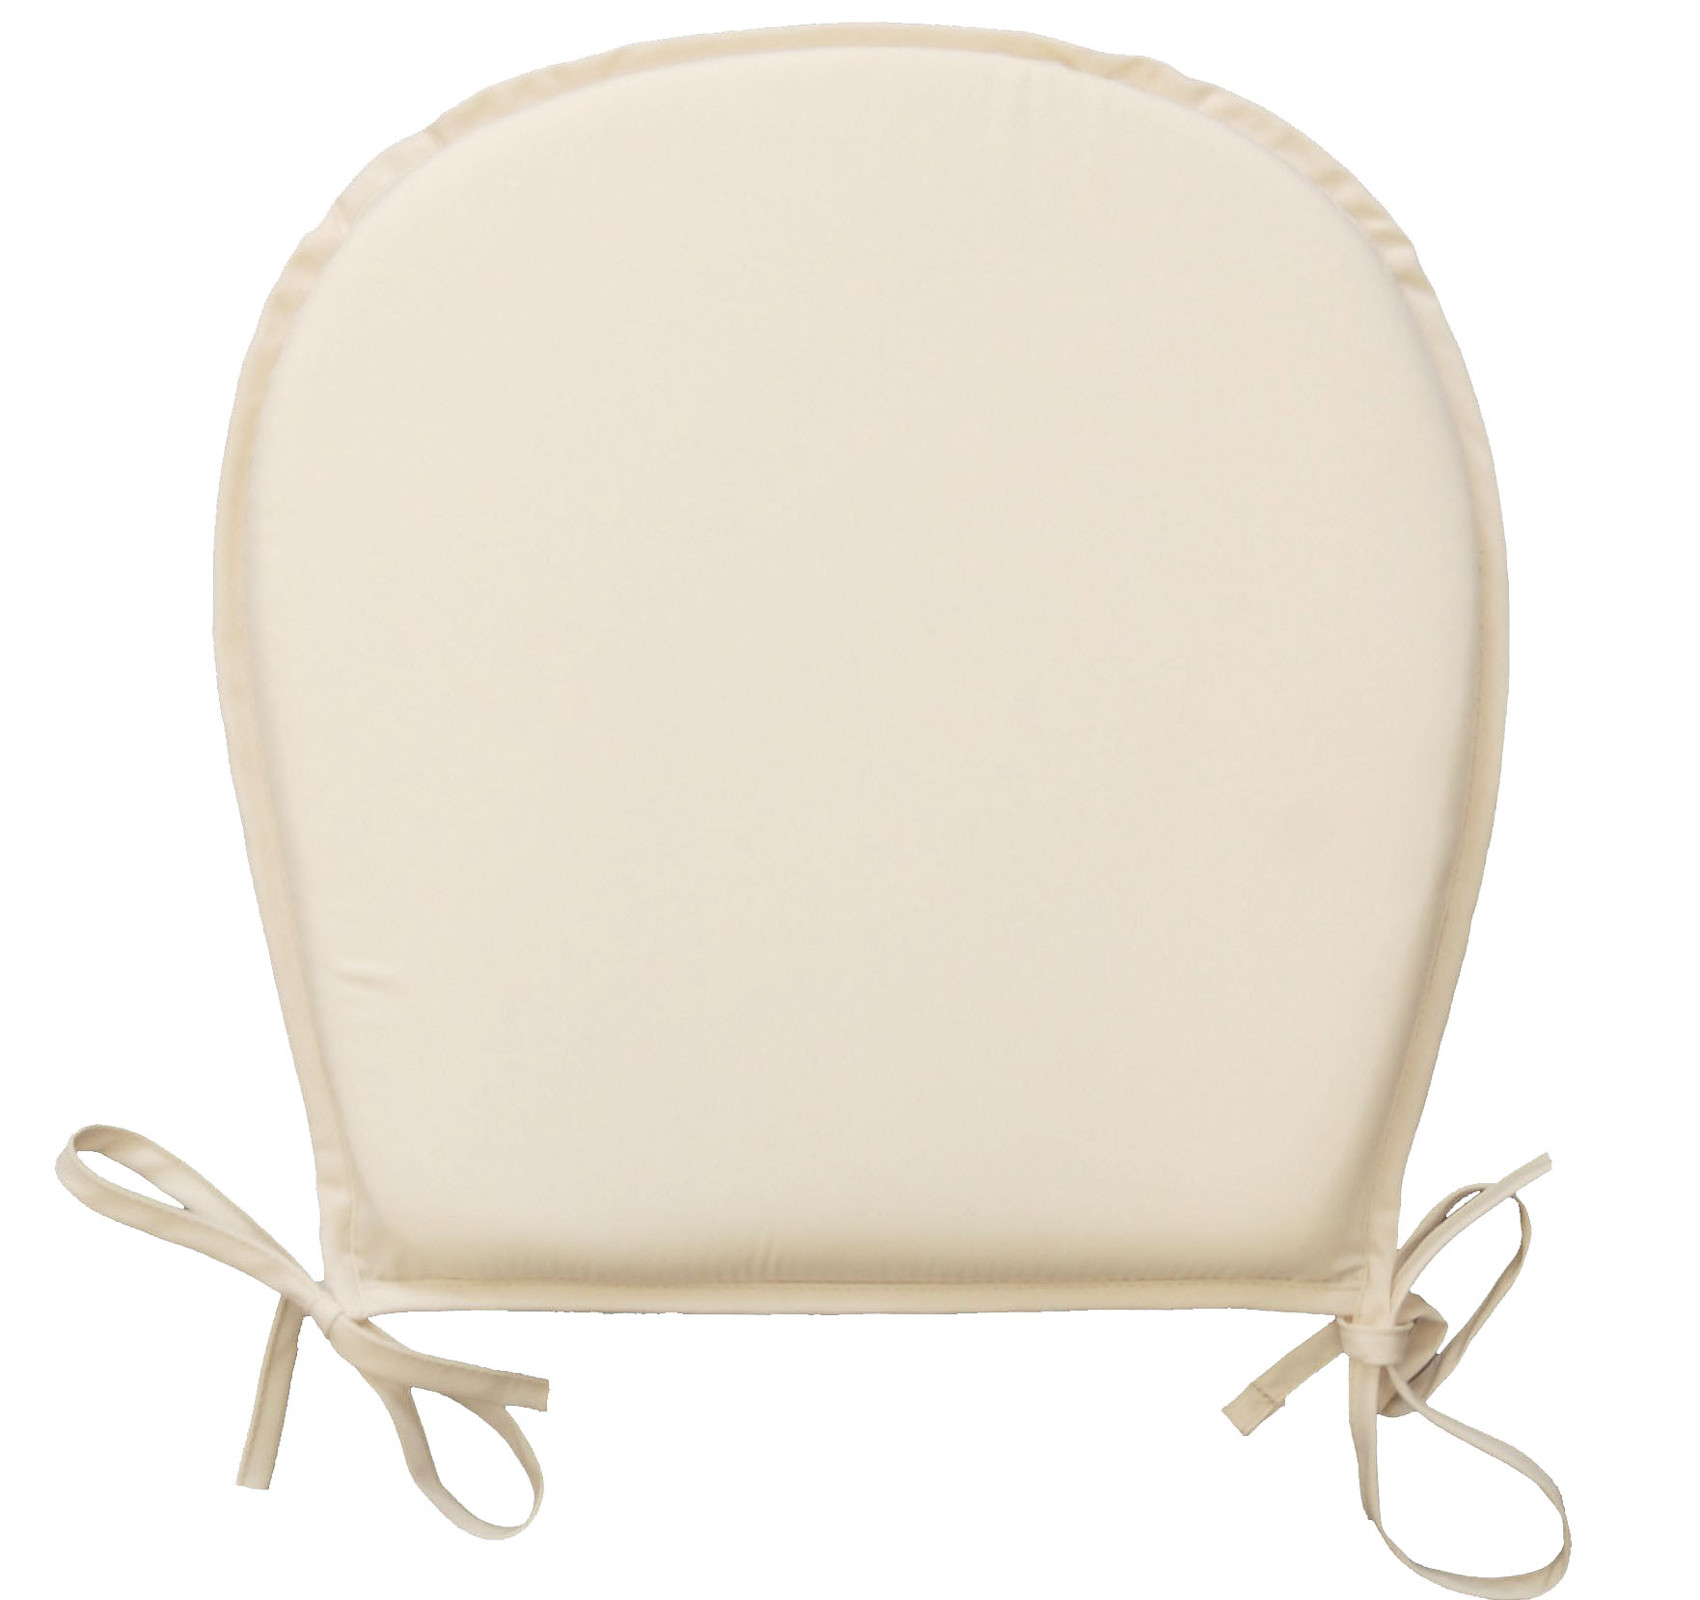 Dining Room Chair Cushion Round Kitchen Seat Pad Garden Furniture Dining Room Chair